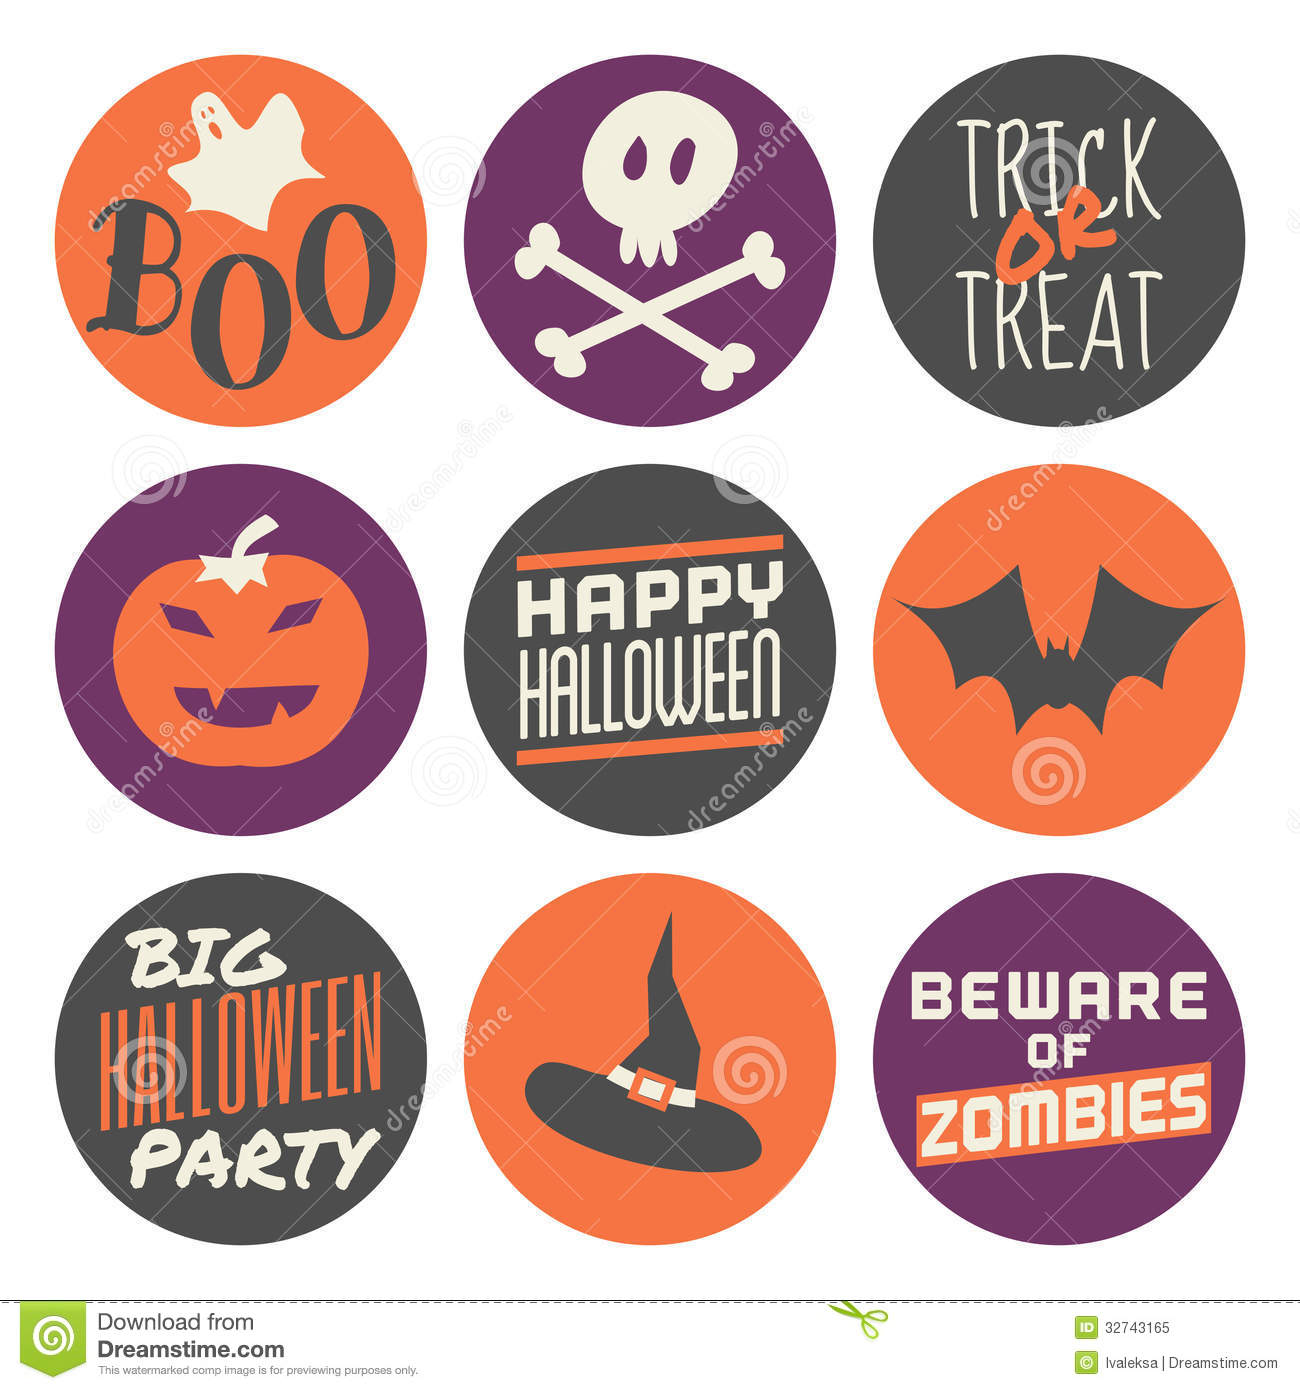 halloween stickers set - Download Halloween Pictures Free